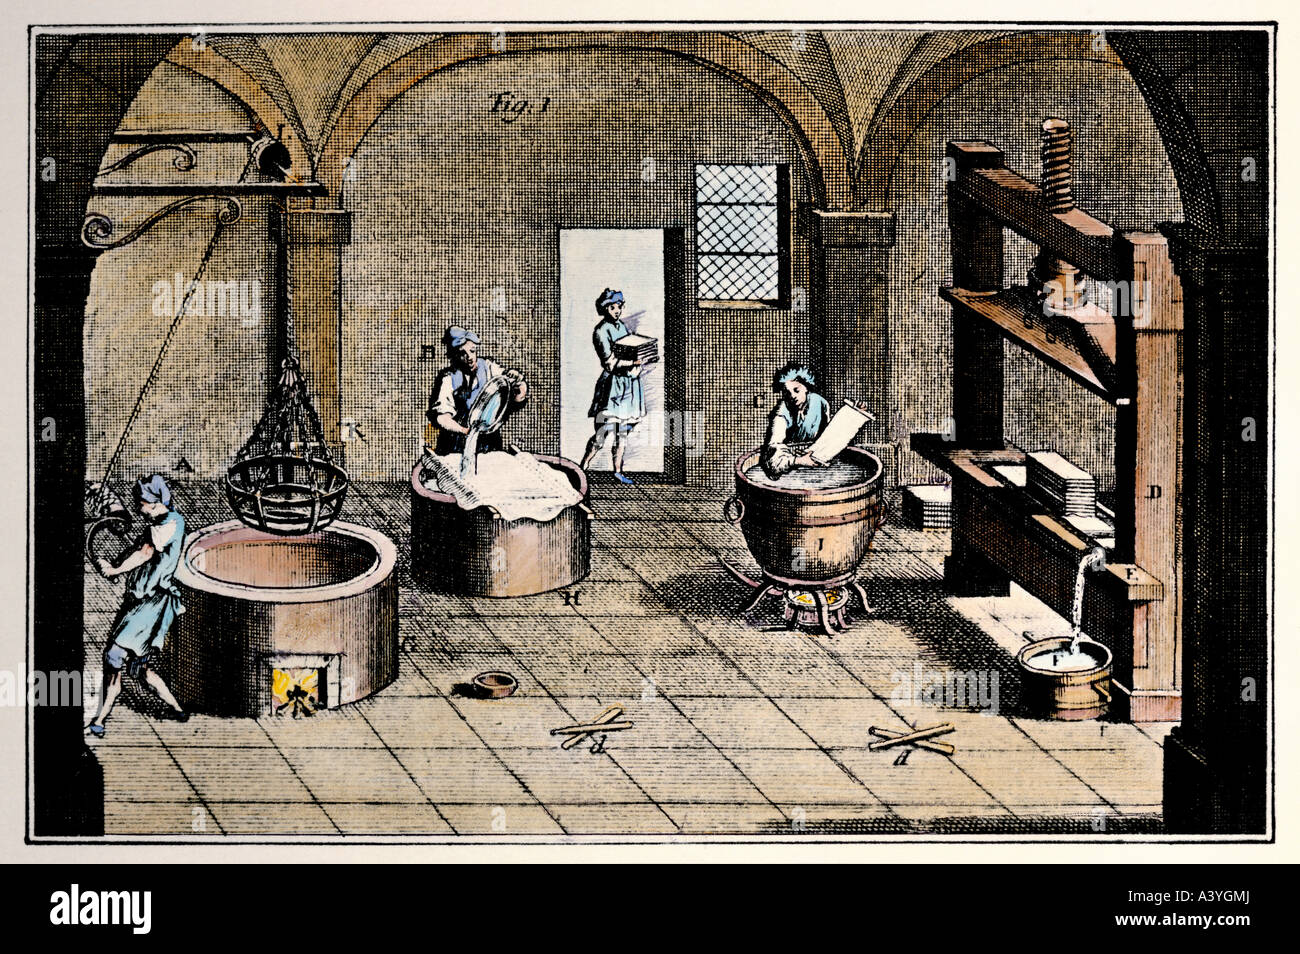 industry, paper manufacture, sizing, colour engraving, second half 18th century, private collection, historic, historical, - Stock Image